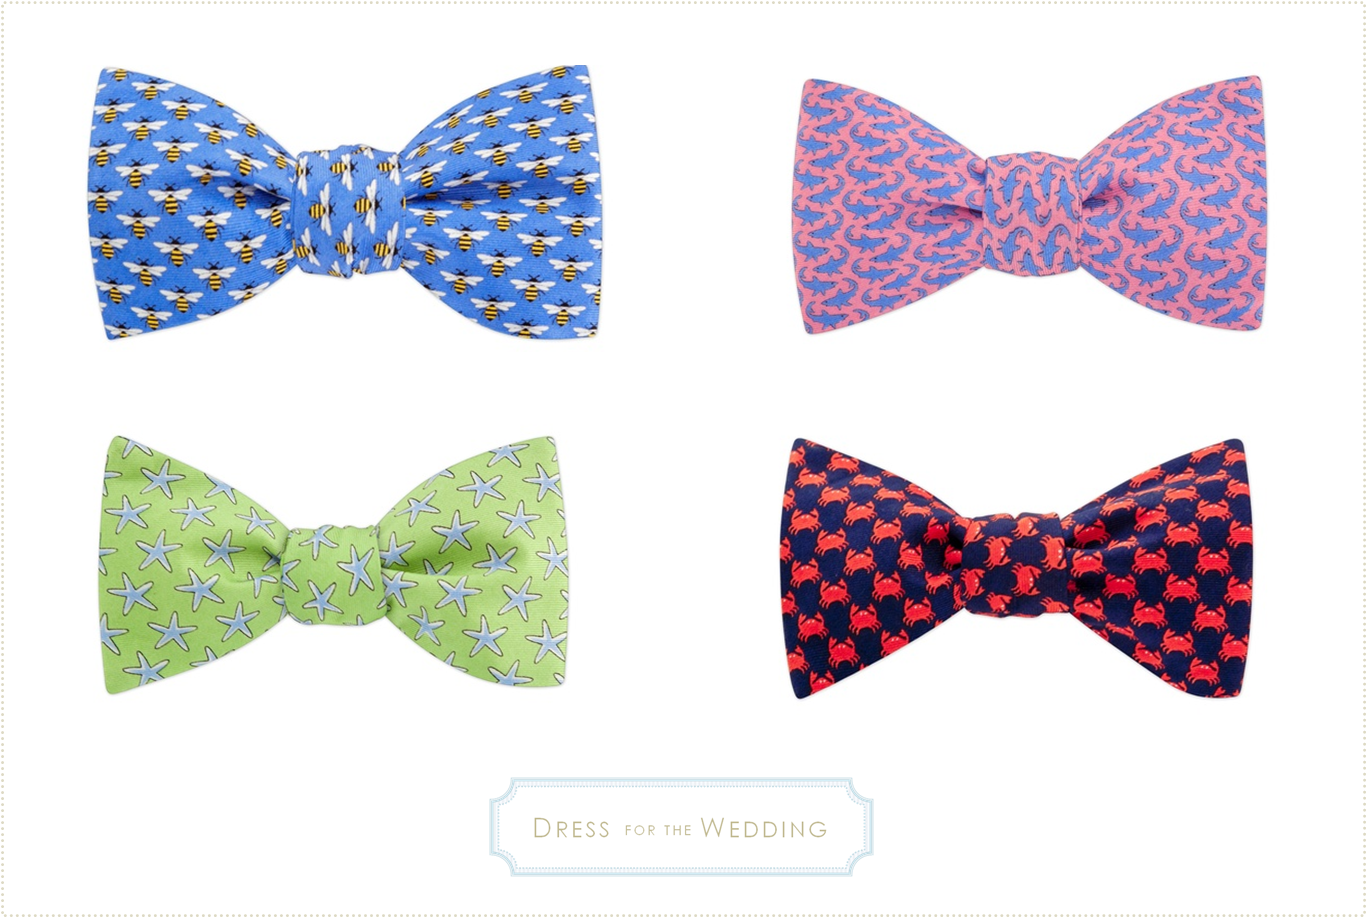 erlinelomantkgs831.ga: Designer Ties to Discount Prices Your Source for Cheap & Discount Ties since We at cheap neckties are proud to be the #1 online source for cheap neckties and bow ties.